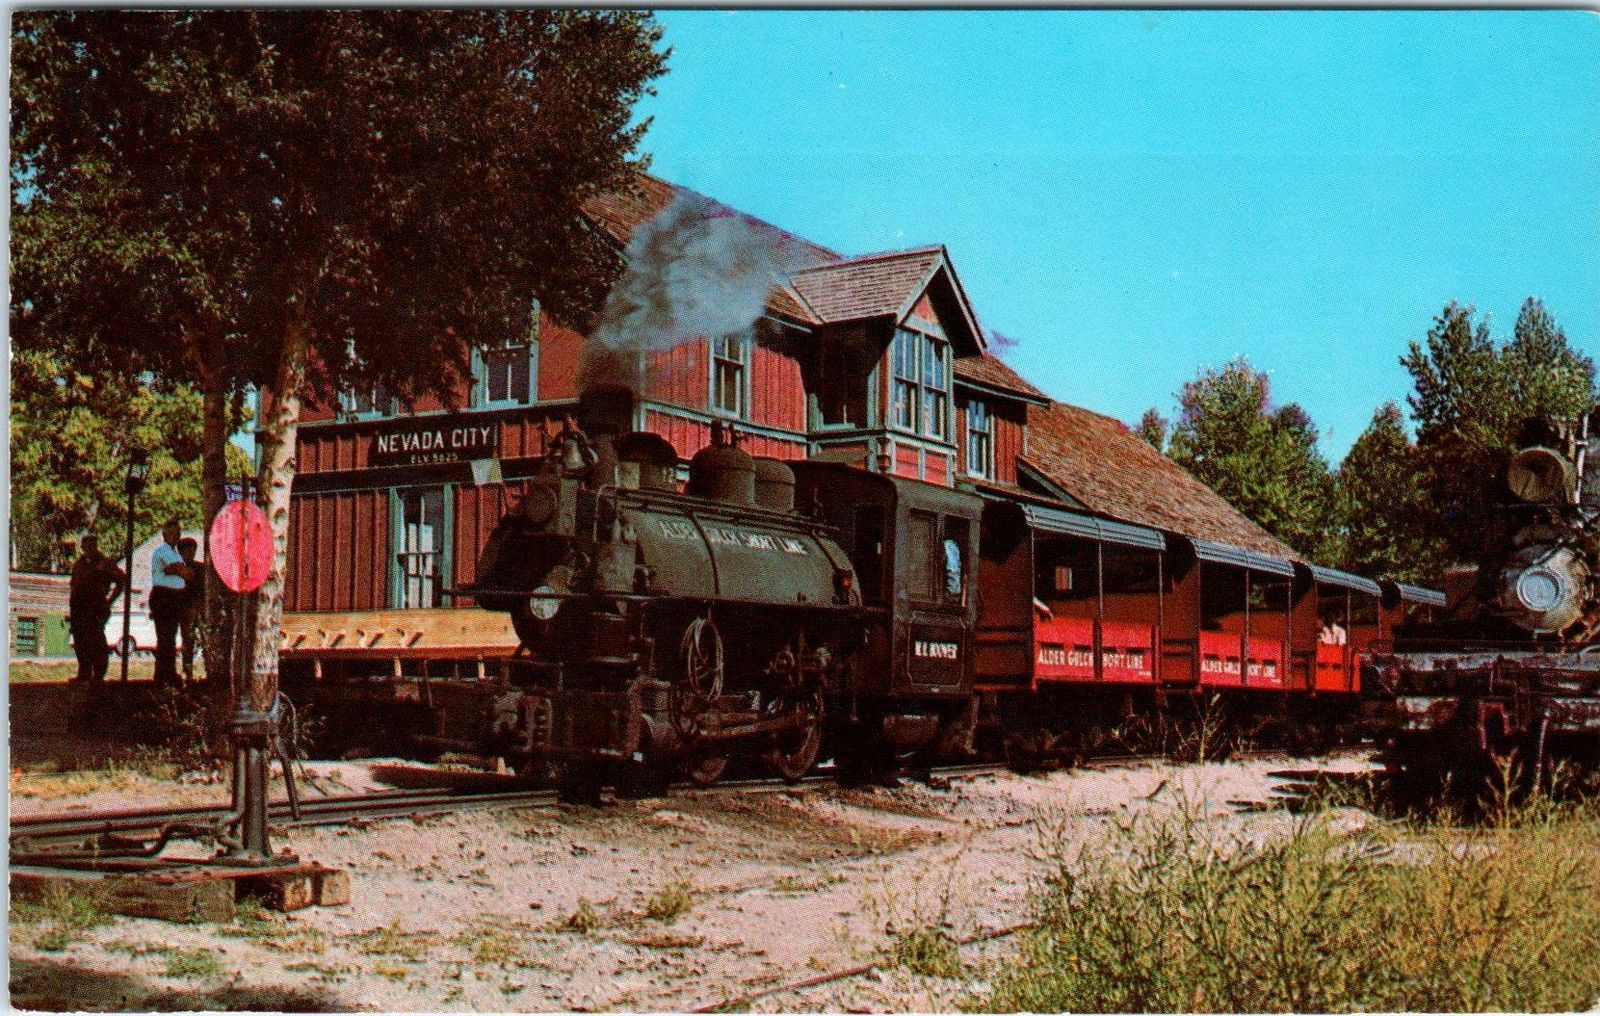 Nevada City Mt Montana Depot Alder Gulch Railroad C1960s Postcard Hippostcard